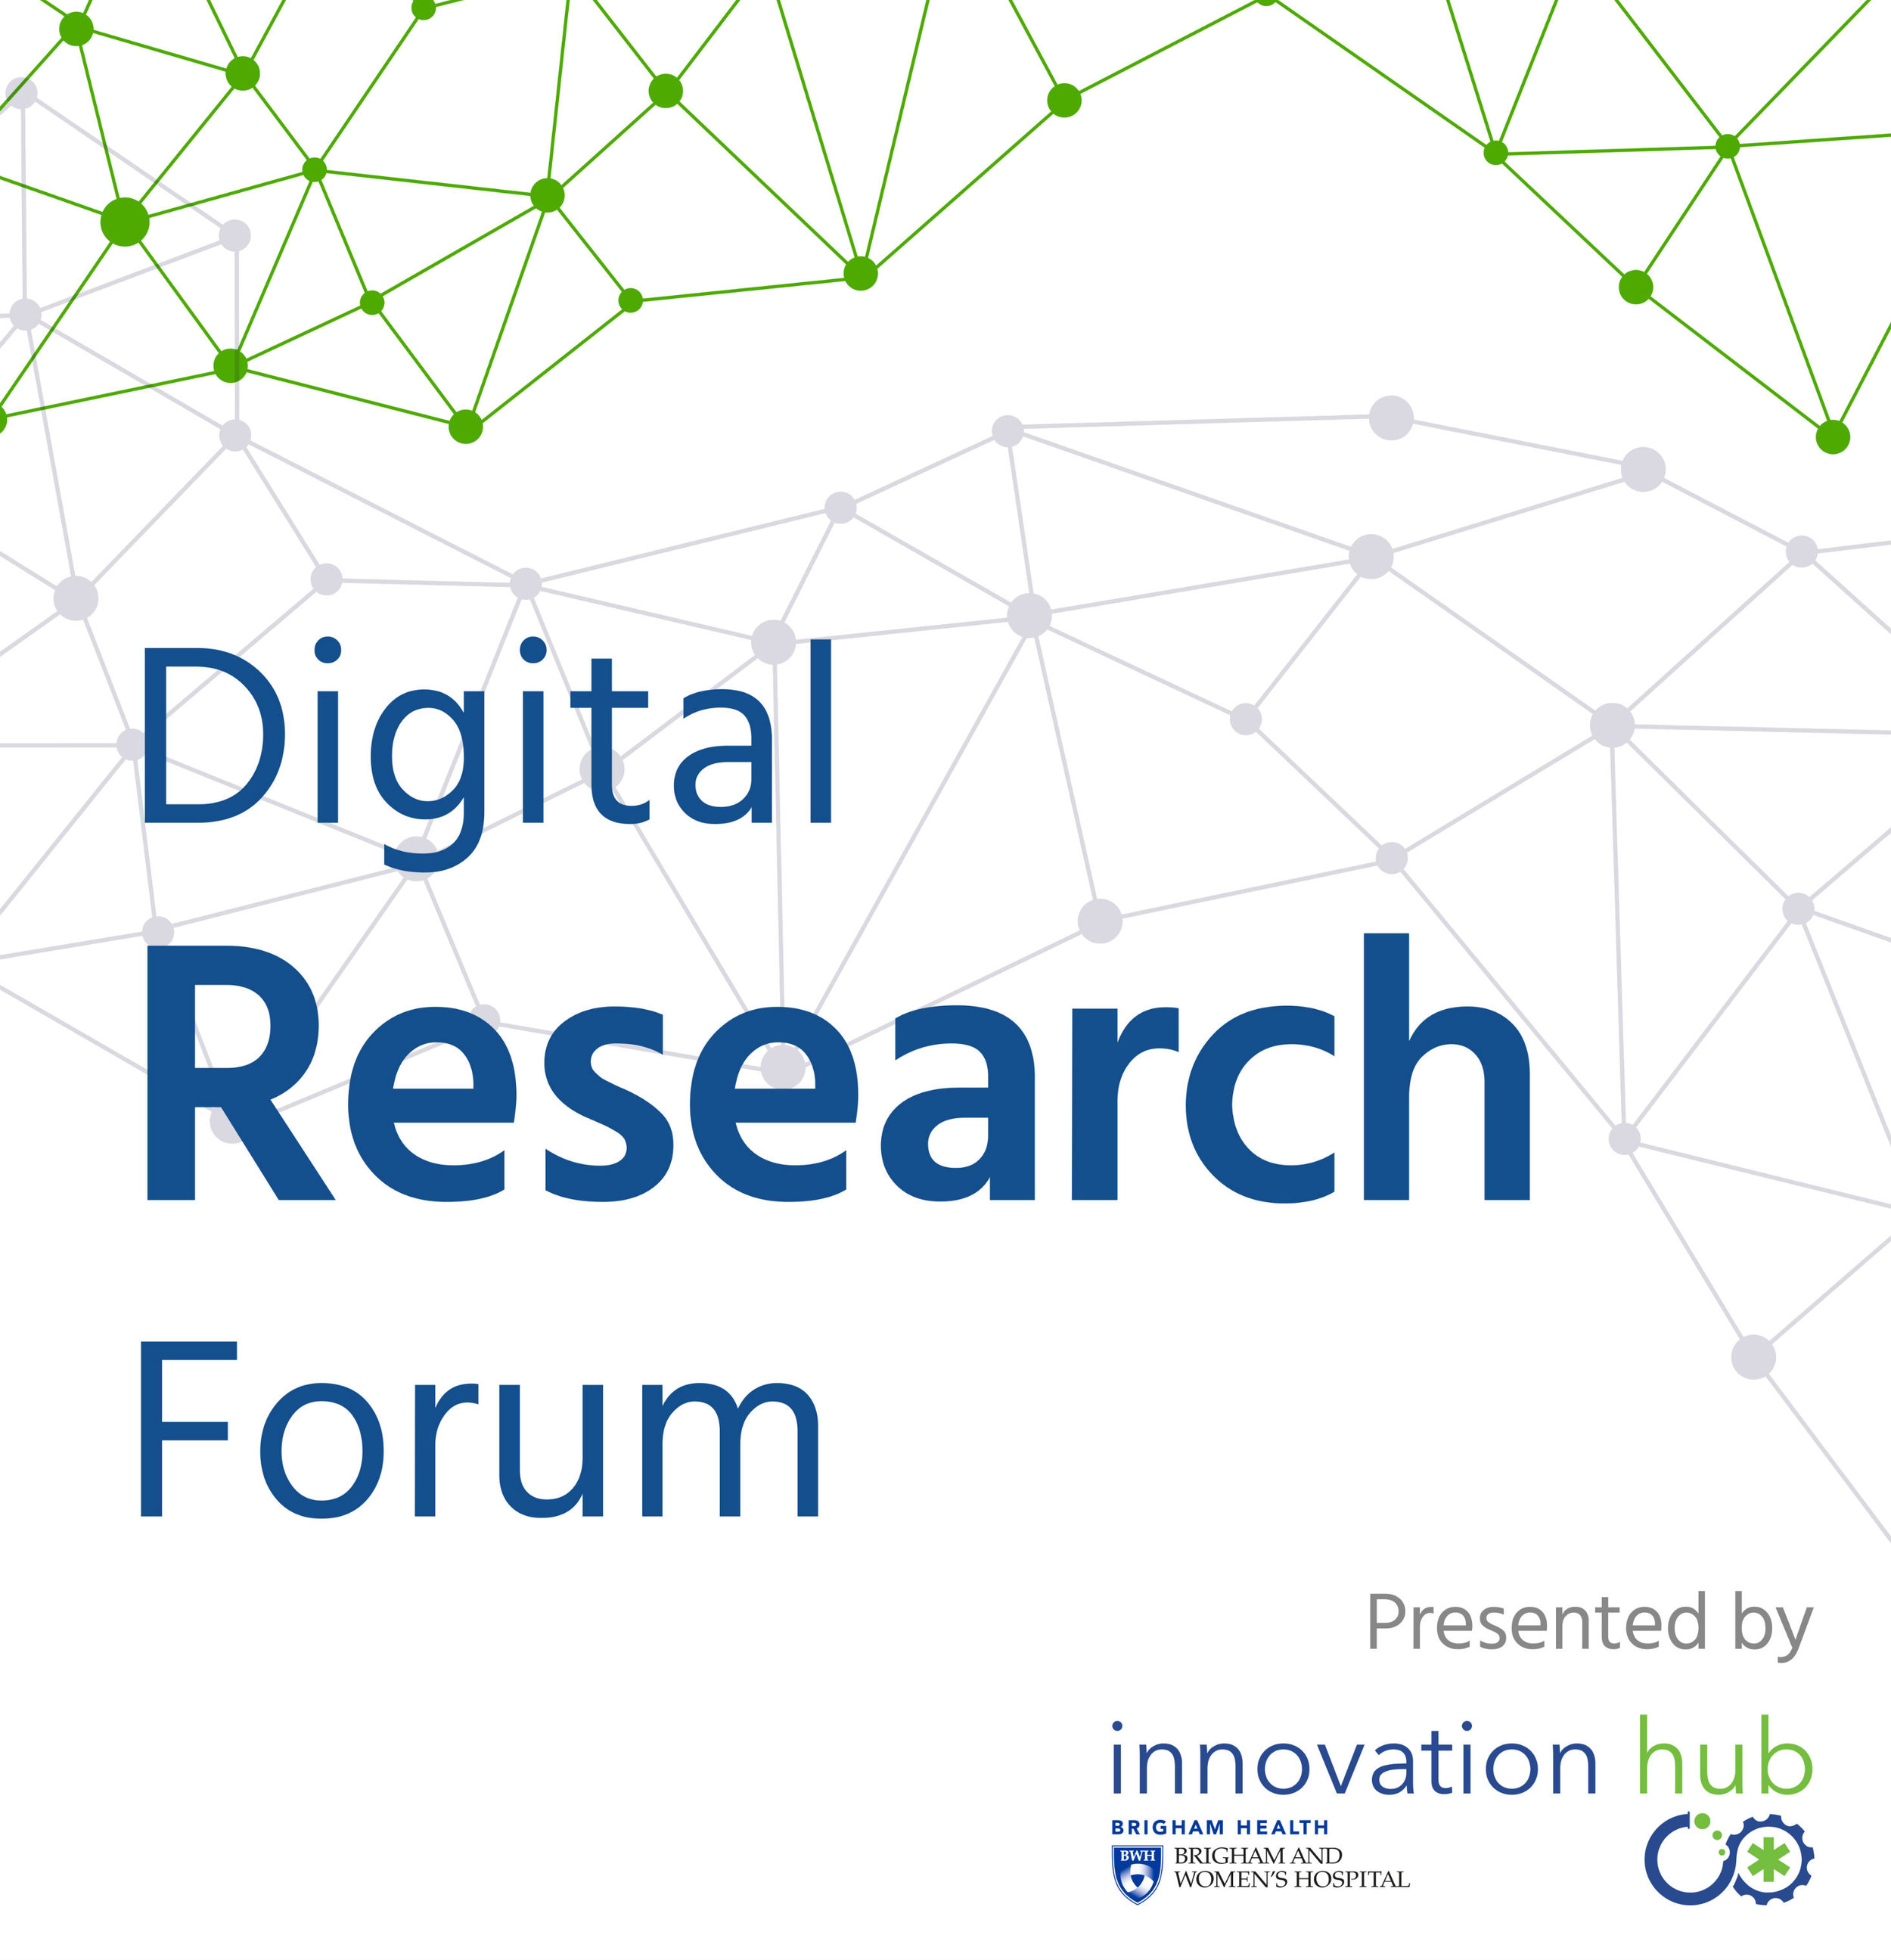 Digital Research Forum Final-1 CROPPED.jpg